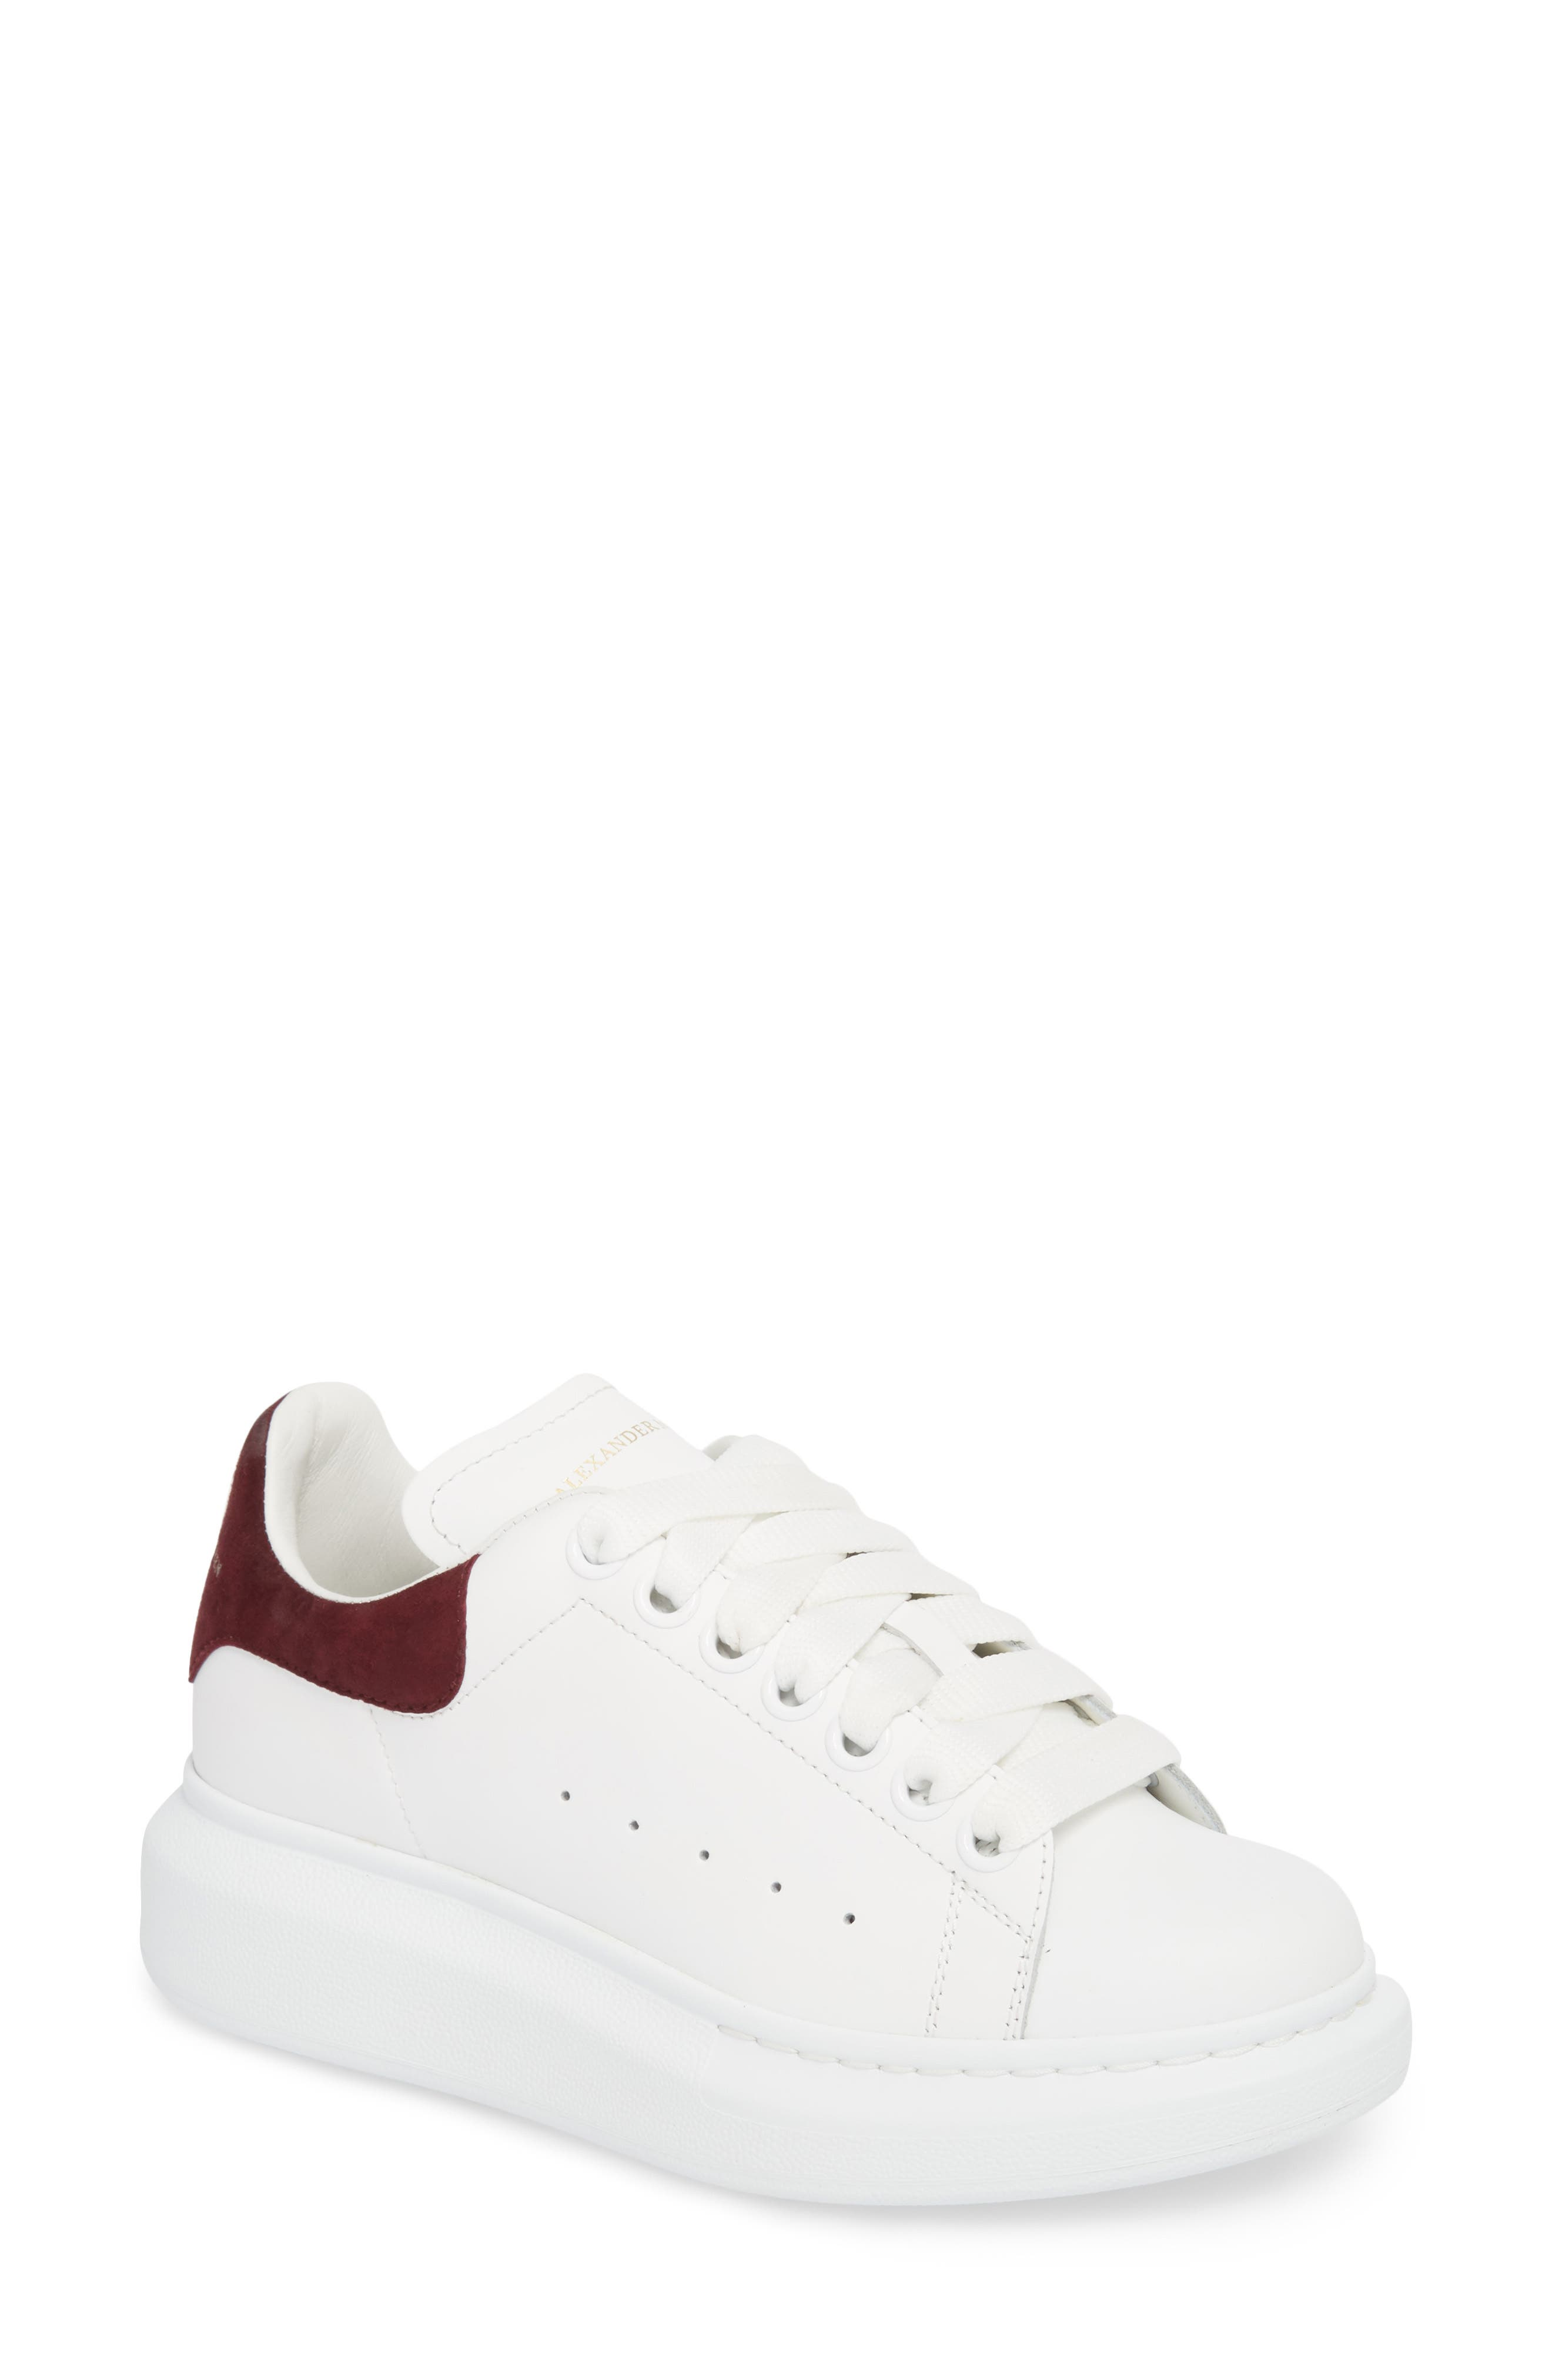 cheap sale finishline McQ Alexander McQueen Burgundy New Knitted Sneakers the cheapest sale online under $60 for sale discount eastbay clearance visit 7QaJ5A